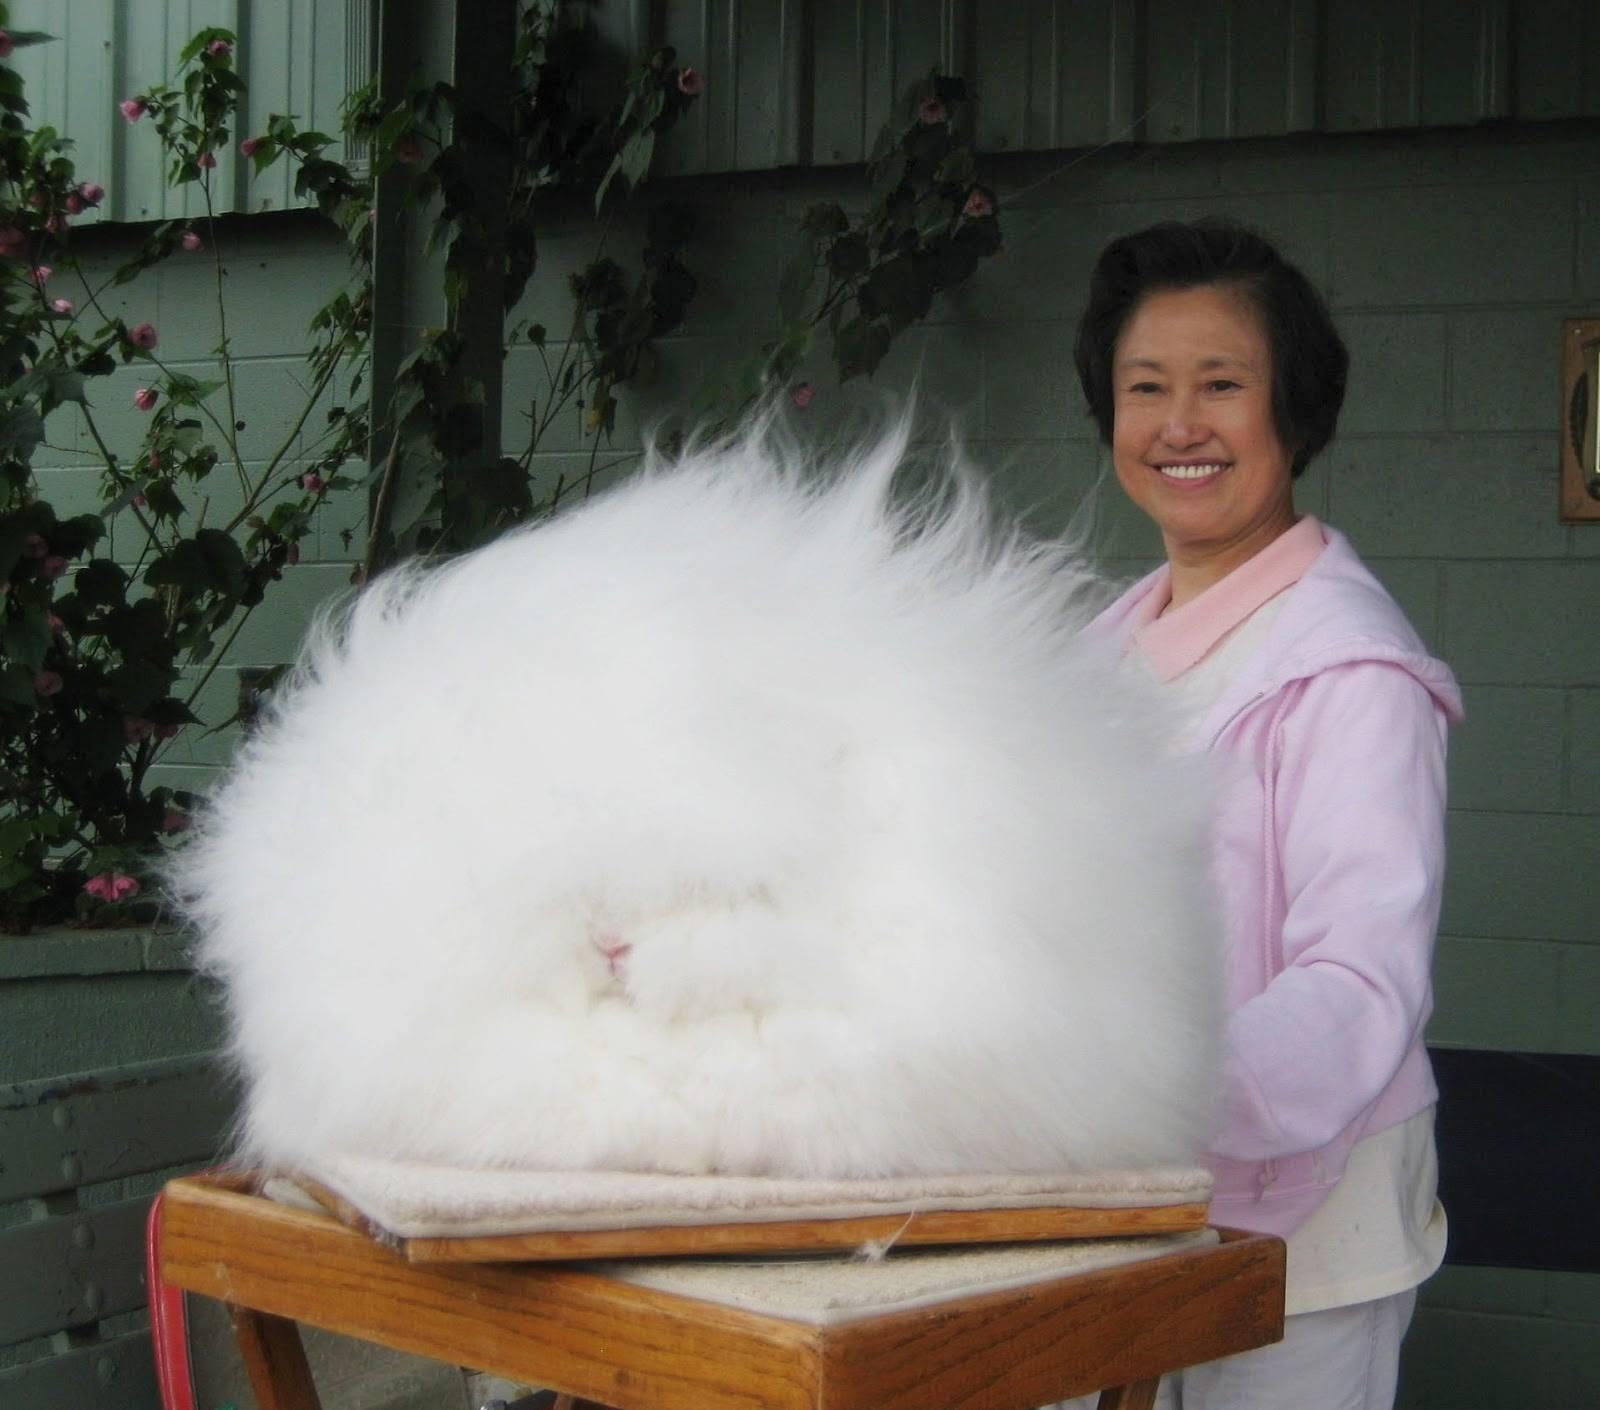 This English Angora is the fluffiest rabbit I have ever seen http://t.co/vk71TWmbCK